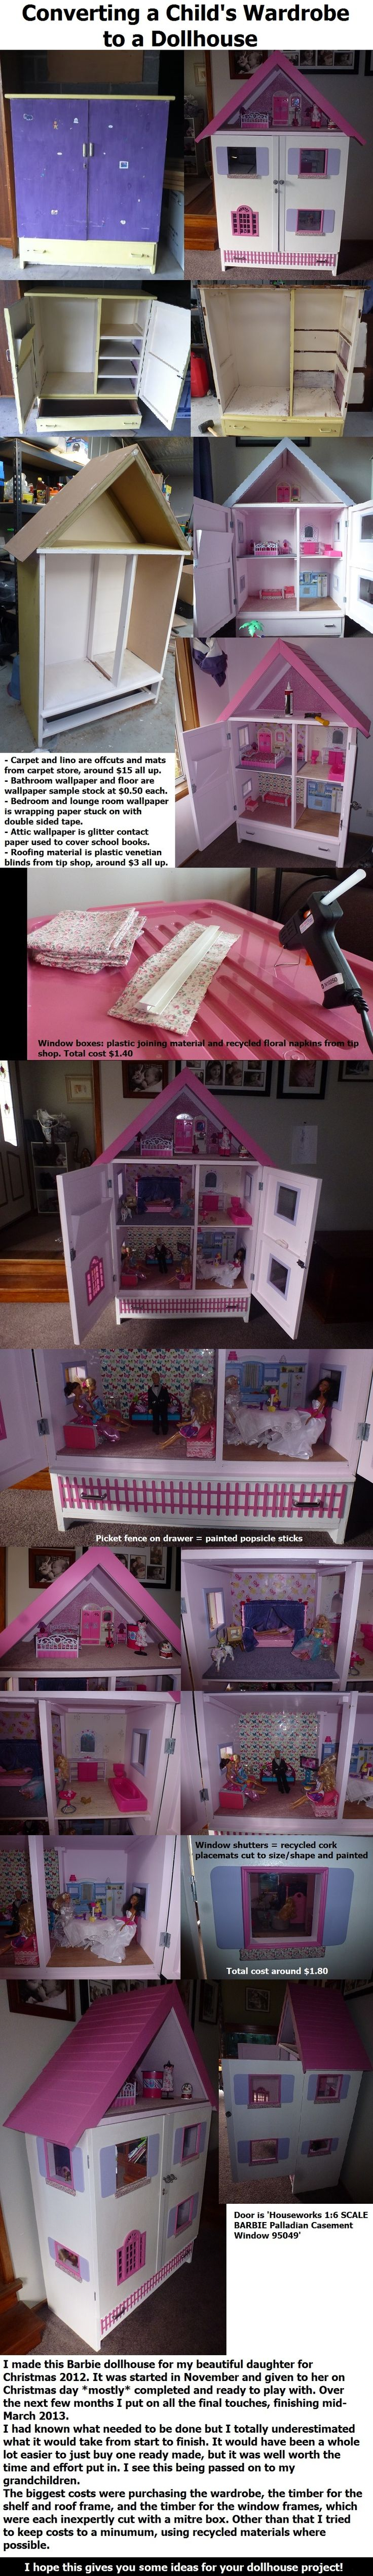 Converting a child's wardrobe/armoire to a Barbie dollhouse. Includes DIY ideas for shutters, window boxes, wallpaper, flooring, picket fence, roof, roofing materials/shingles, decor etc. # Barbie Dollhouse # Armoire dollhouse # Wardrobe dollhouse # DIY dollhouse